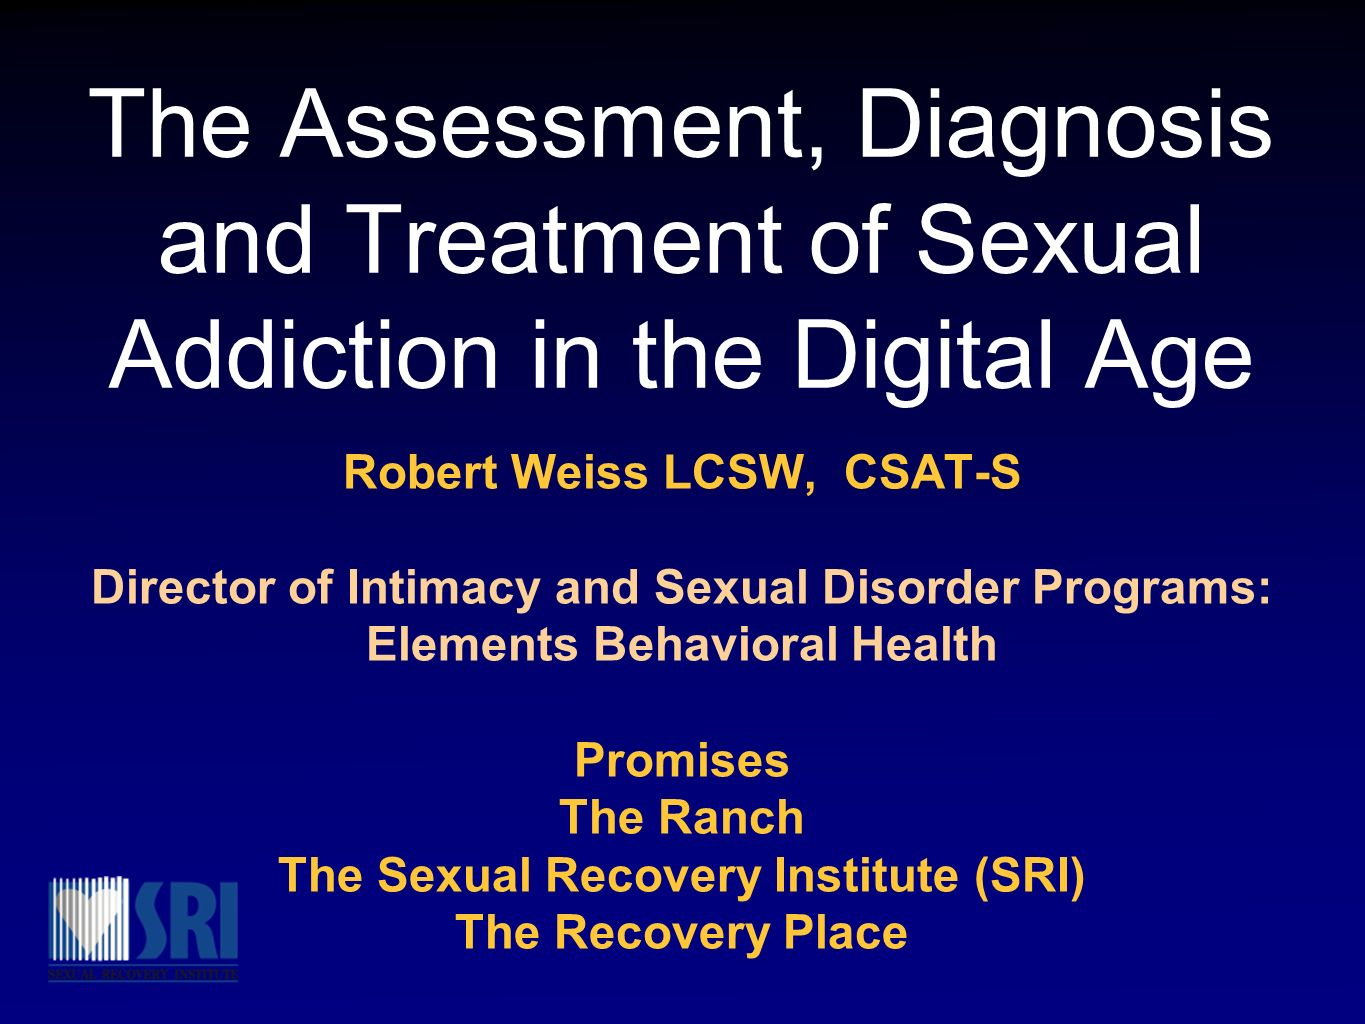 The Assessment, Diagnosis and Treatment of Sexual Addiction in the Digital Age Robert Weiss LCSW, CSAT-S Director of Intimacy and Sexual Disorder Prog